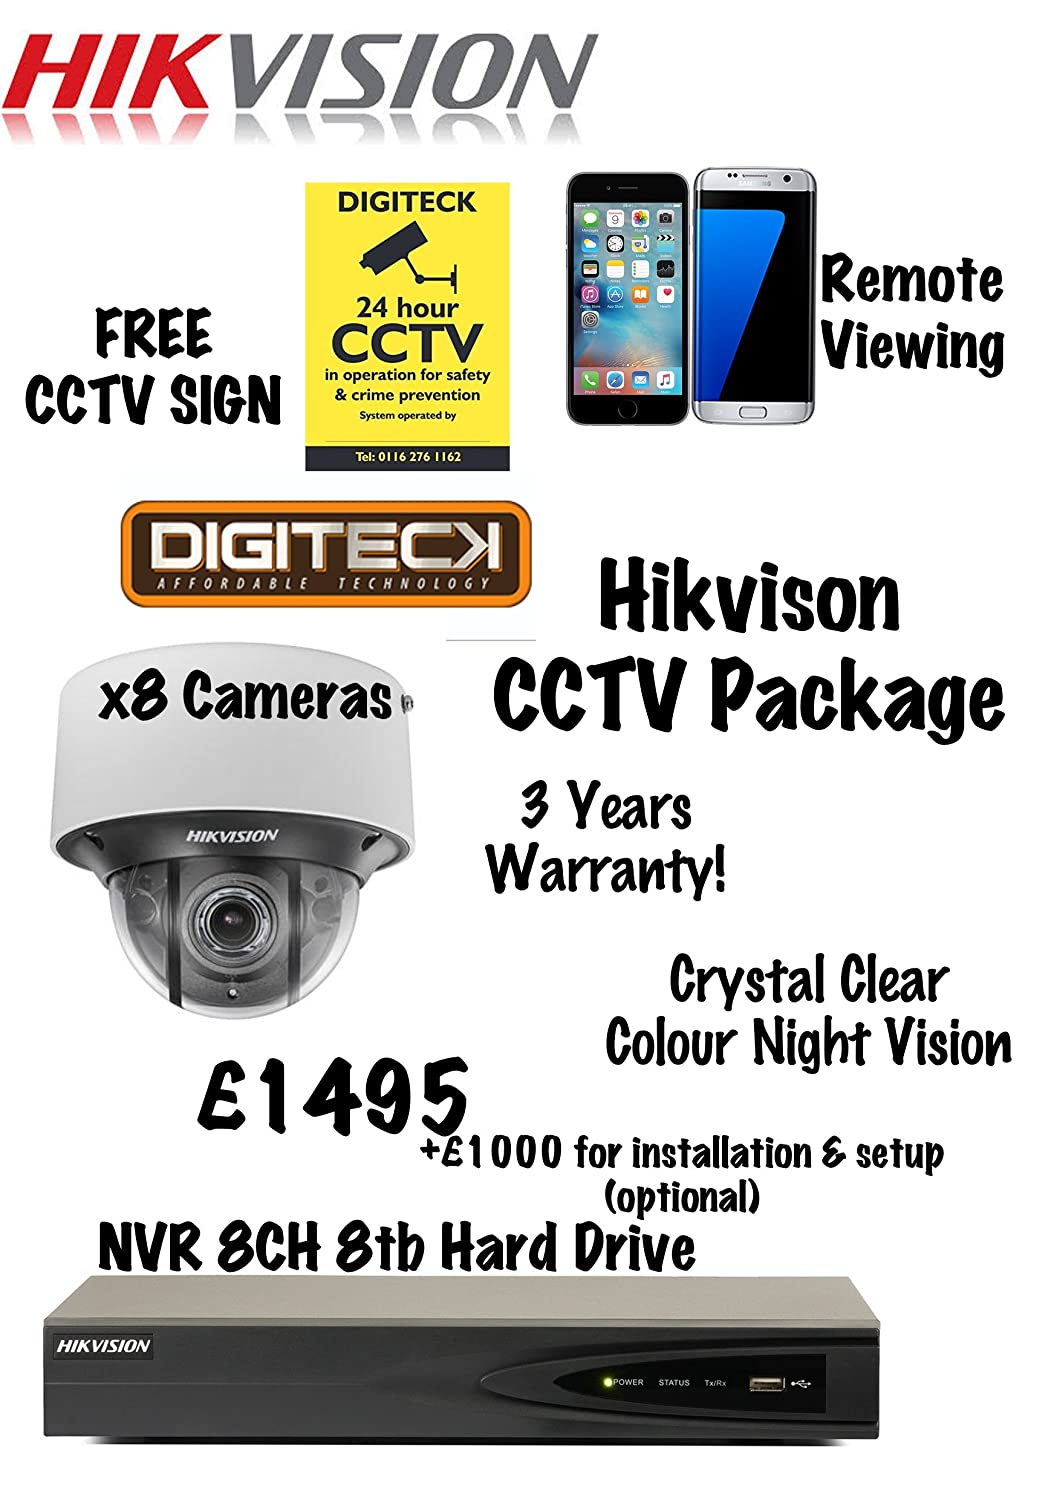 HIKVISION BEST NIGHT VISION IP NETWORK HD CAMERA CCTV: Amazon co uk